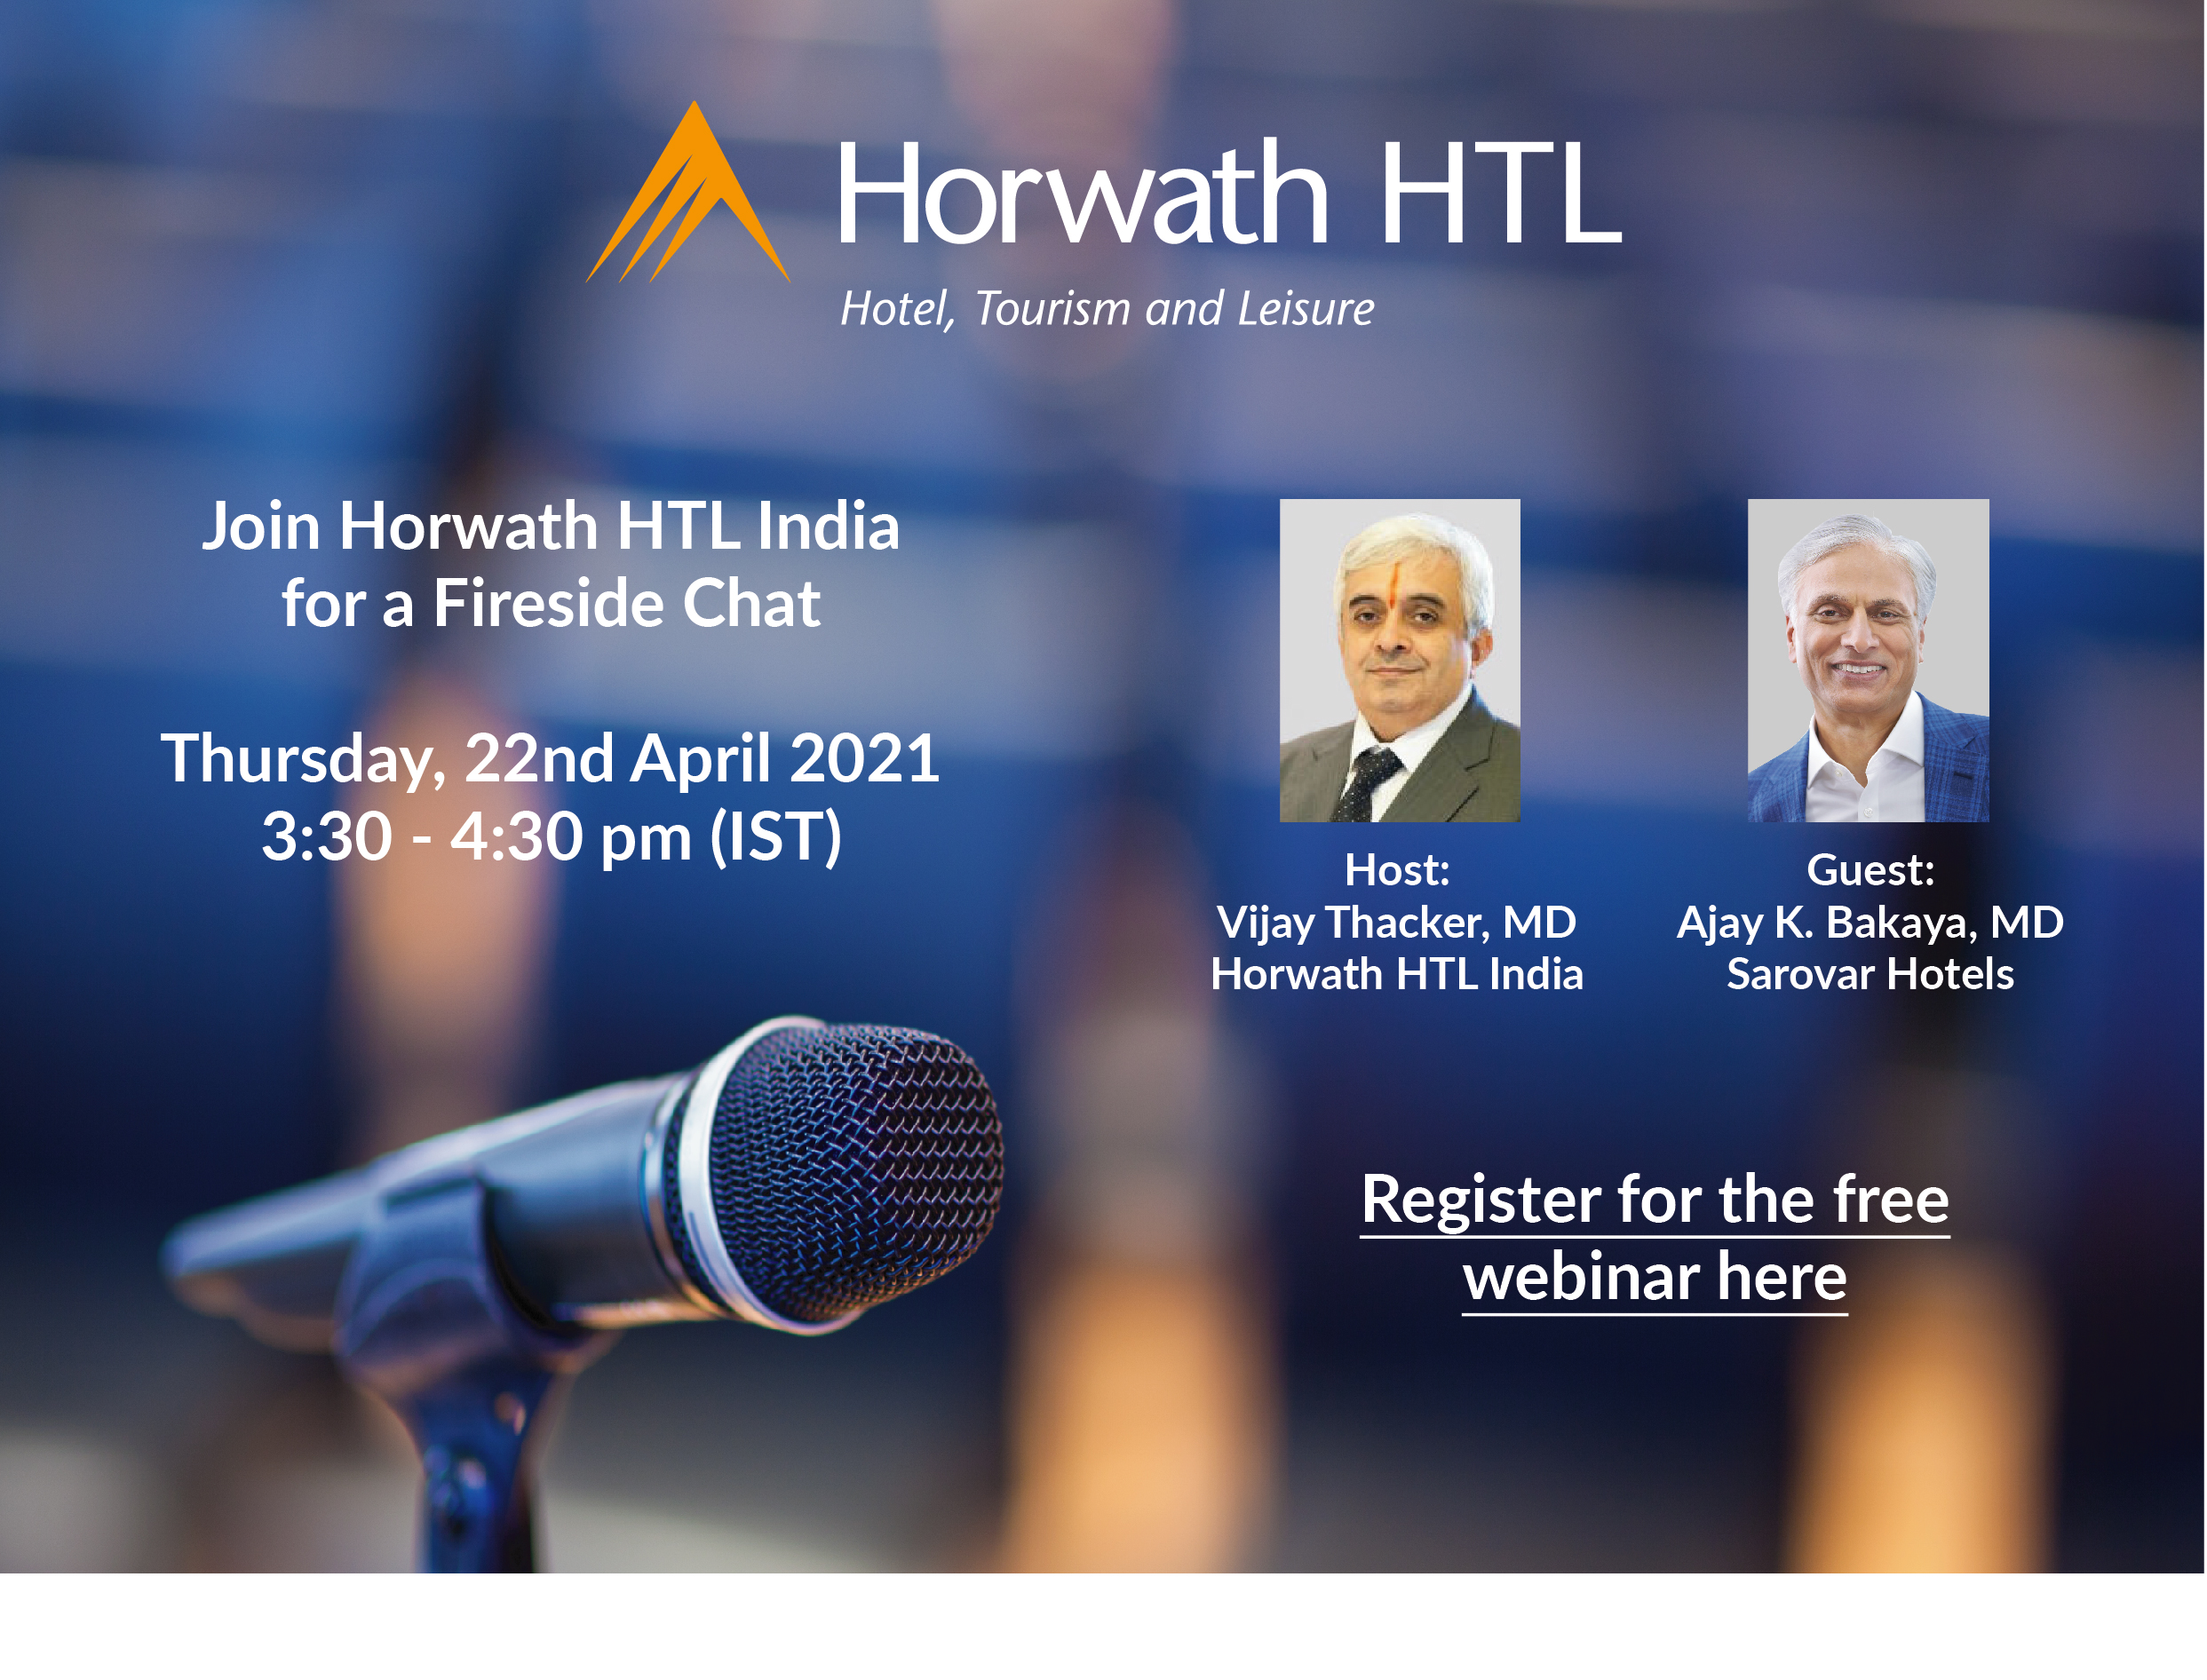 Horwath HTL India: A Fireside Chat with Ajay K Bakaya